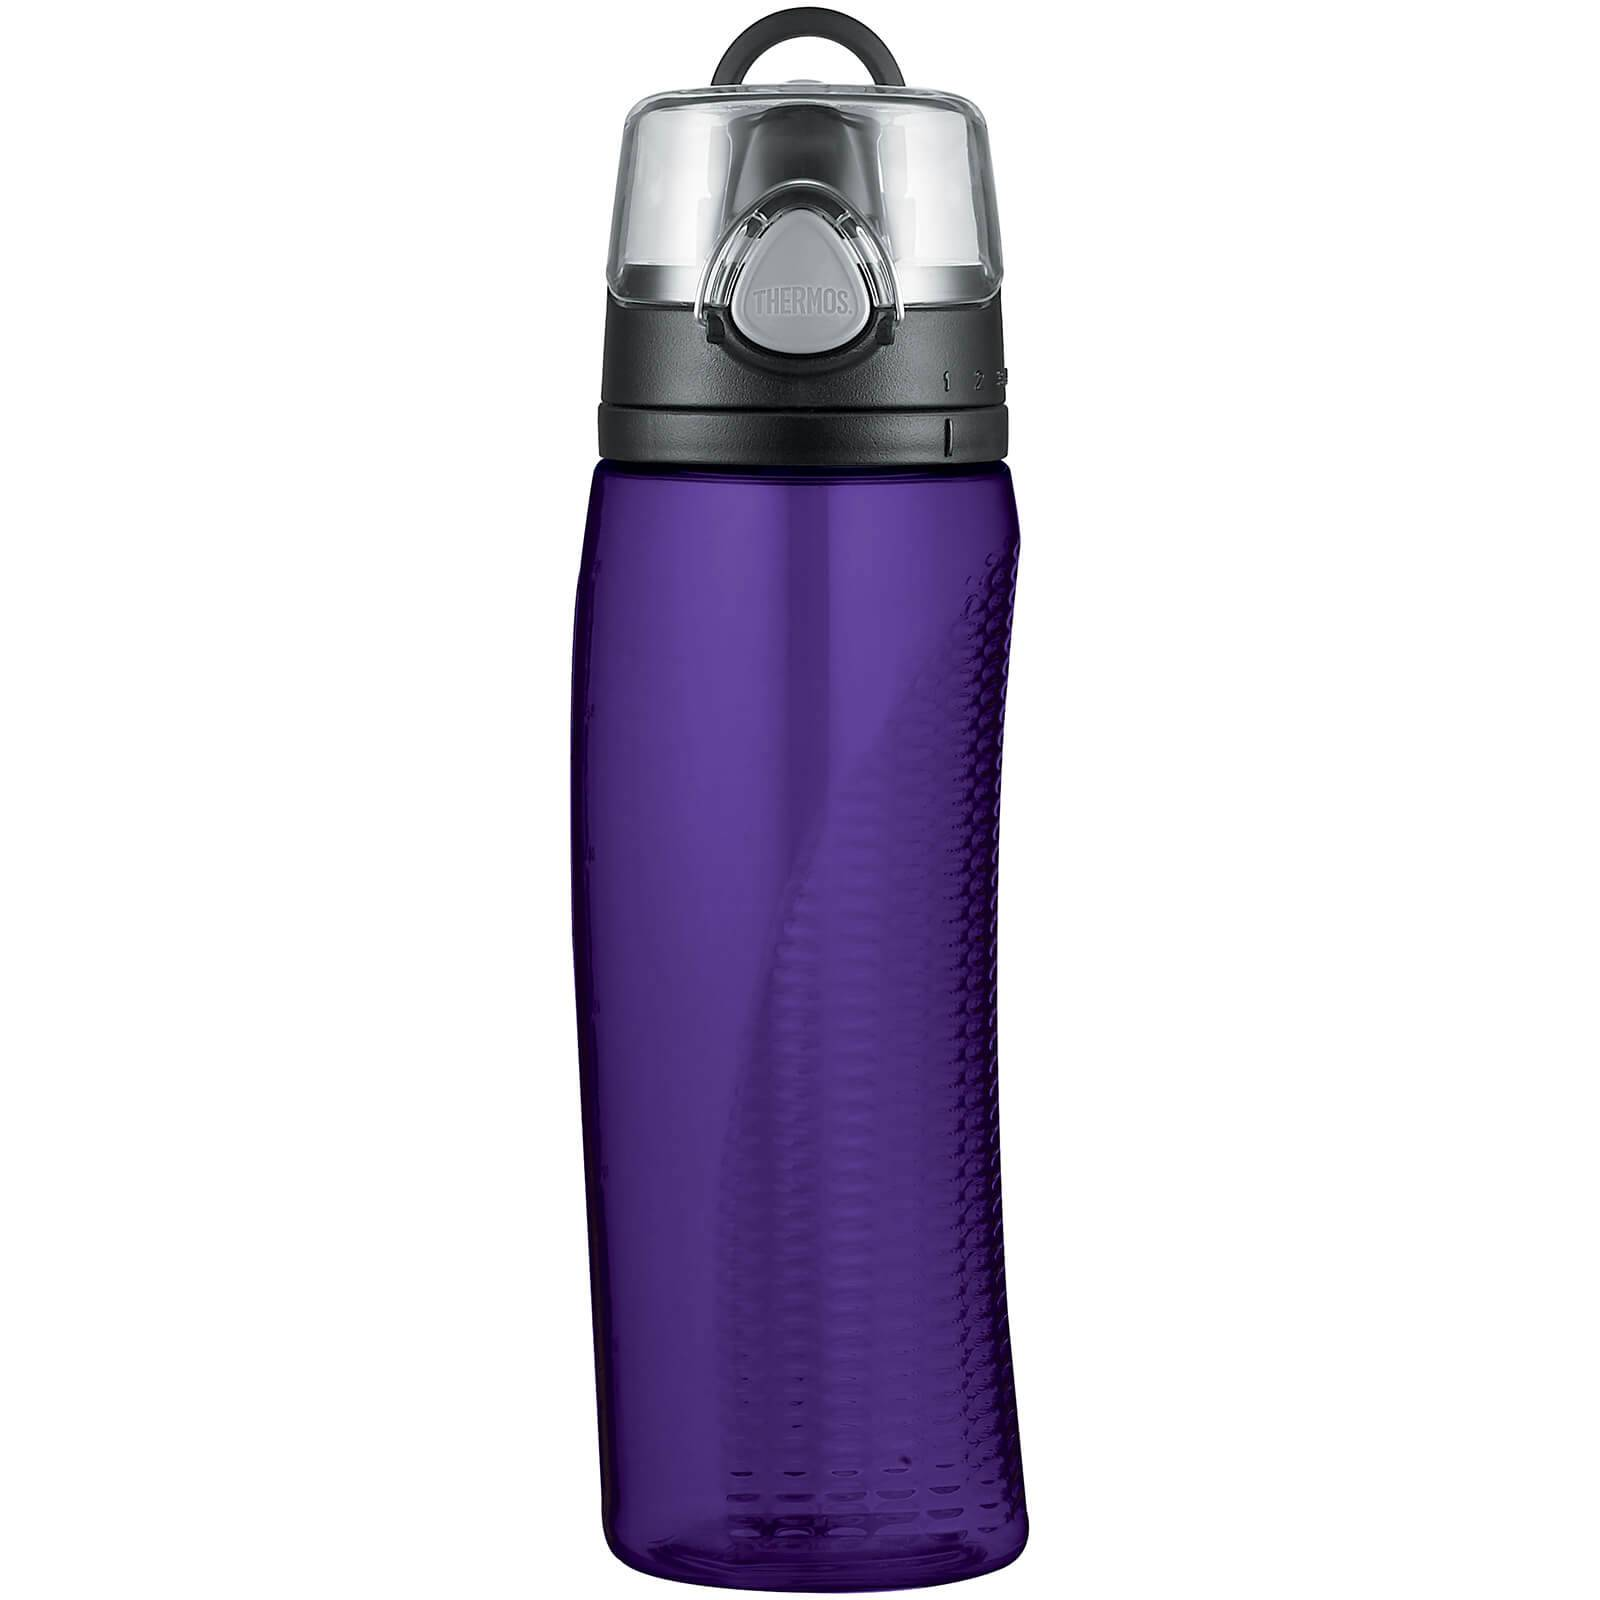 Thermos Hydration Bottle with Meter - Deep Purple 710ml